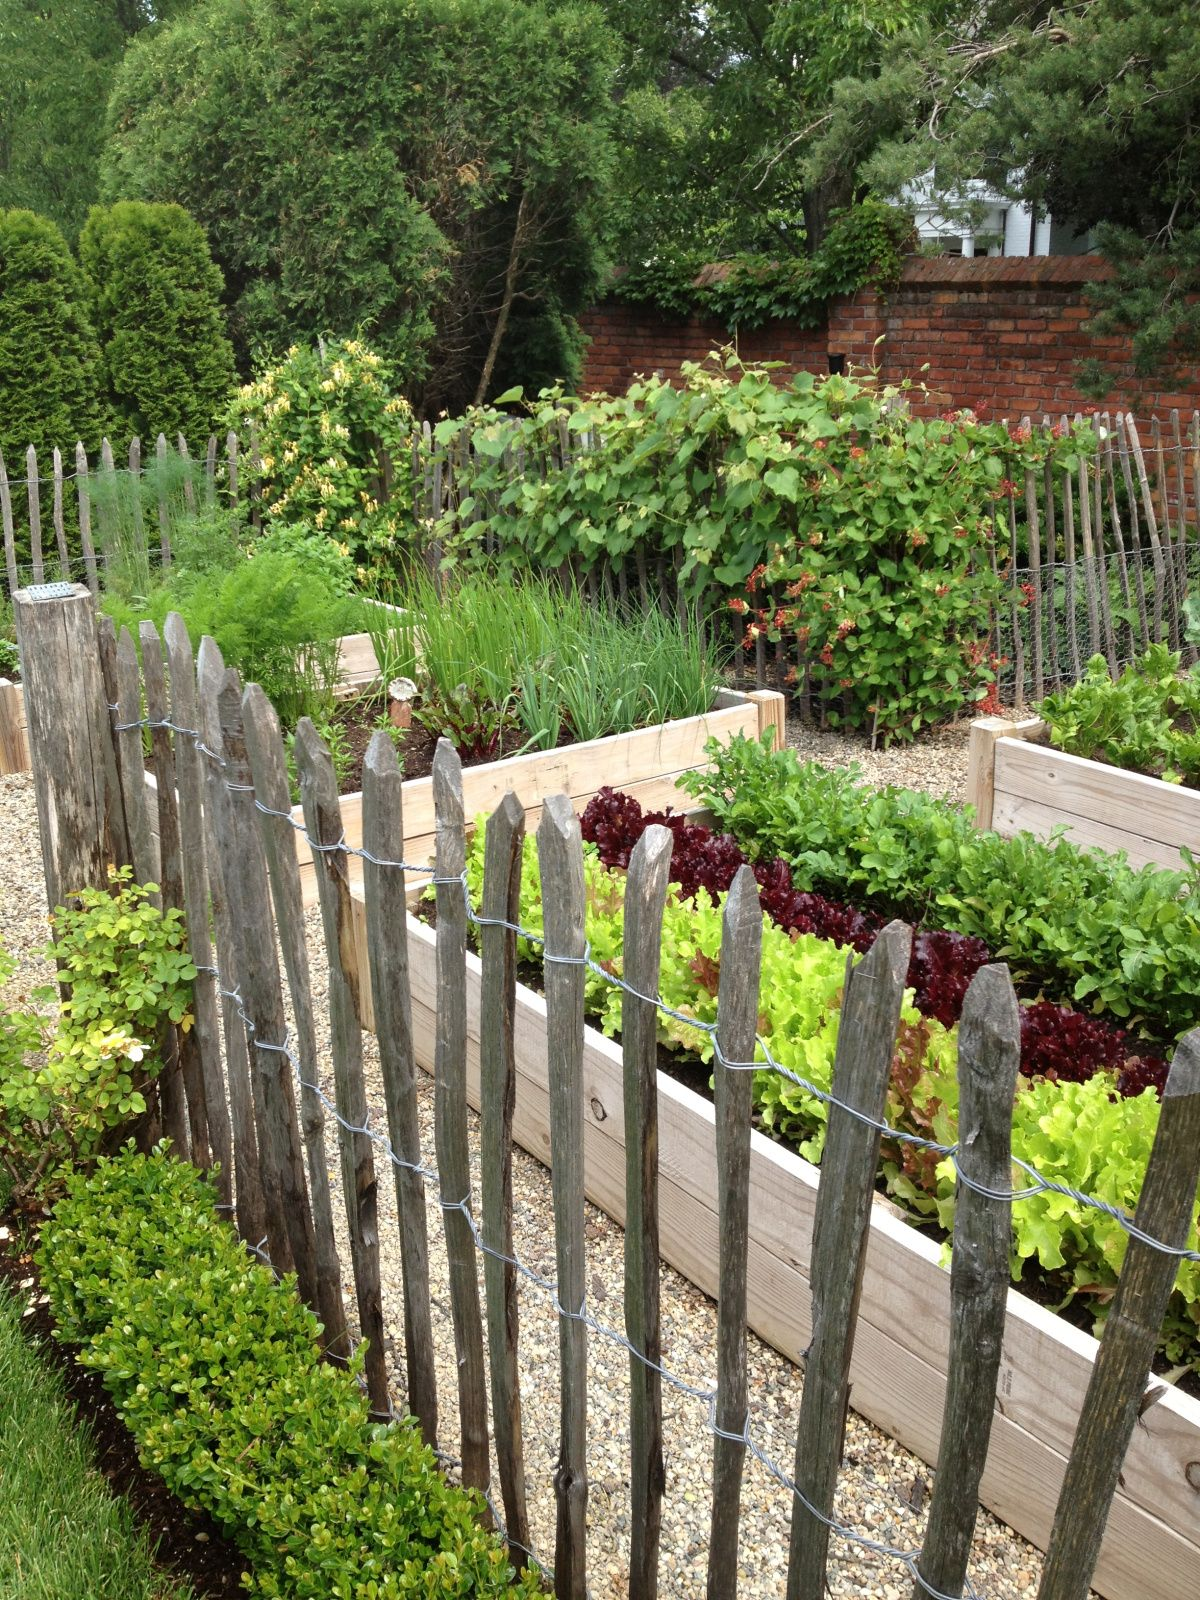 Vegetable garden inspiration screen fences jardins potager en jardin potager for Potagers sureleves